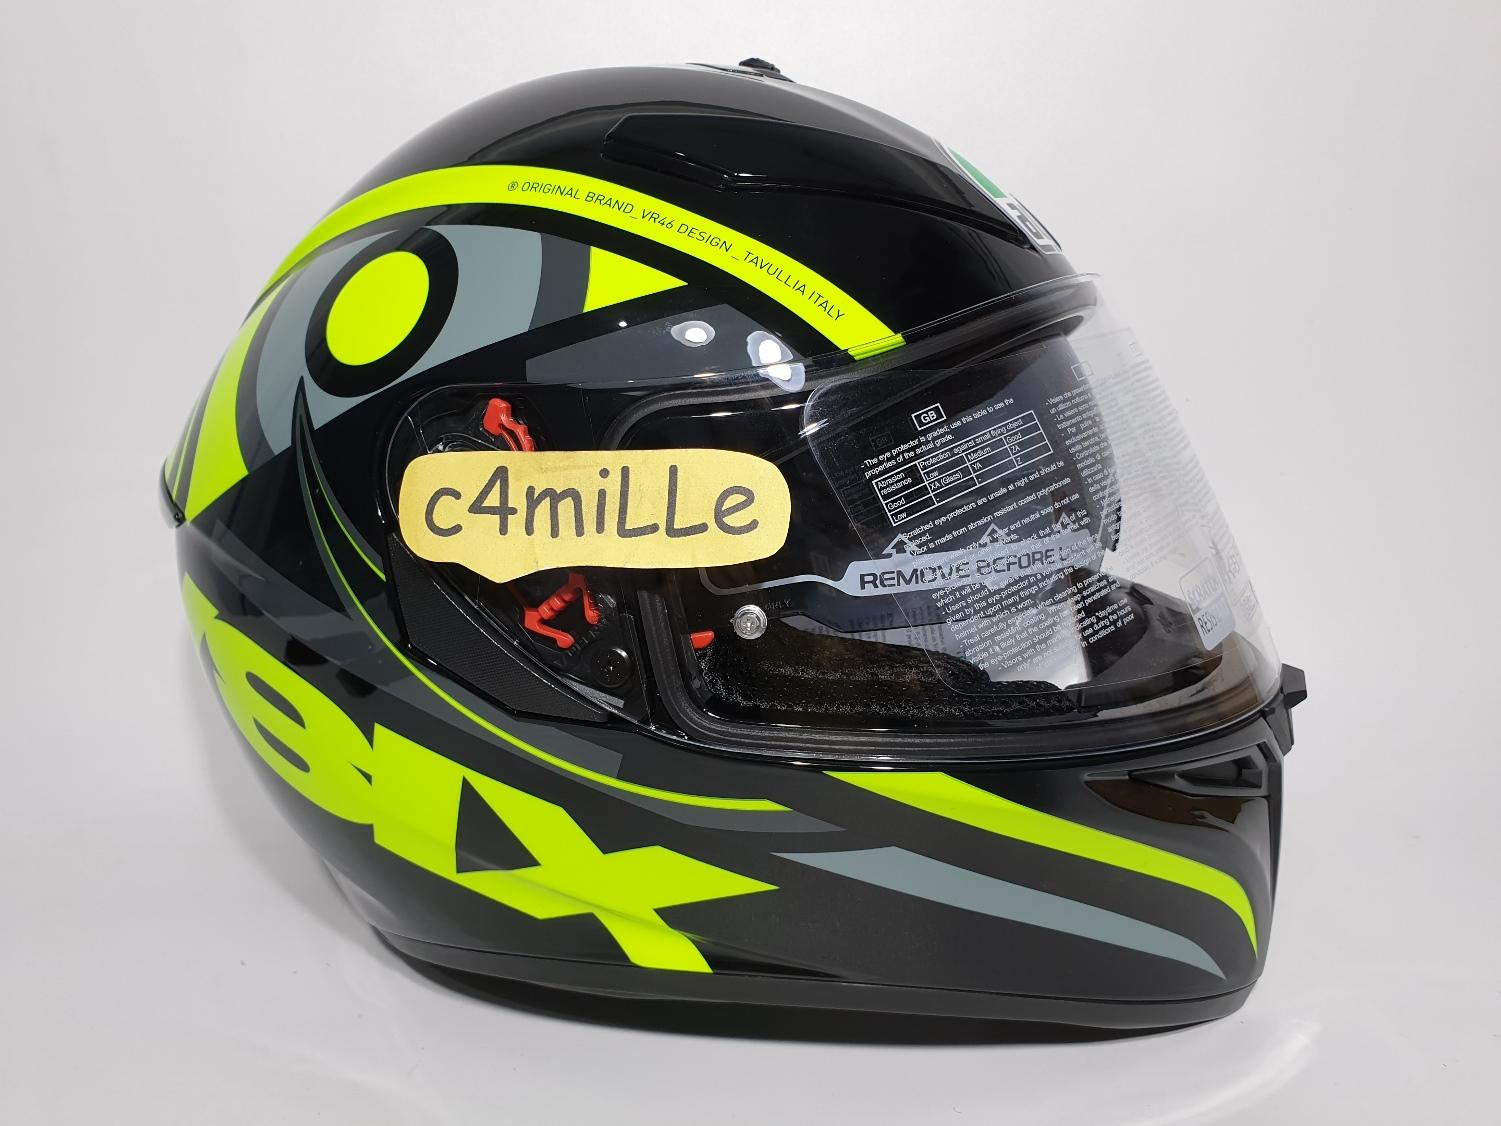 HELM AGV K3 SV TOP SOLUN 46 DOUBLE VISOR FULL FACE SIZE M